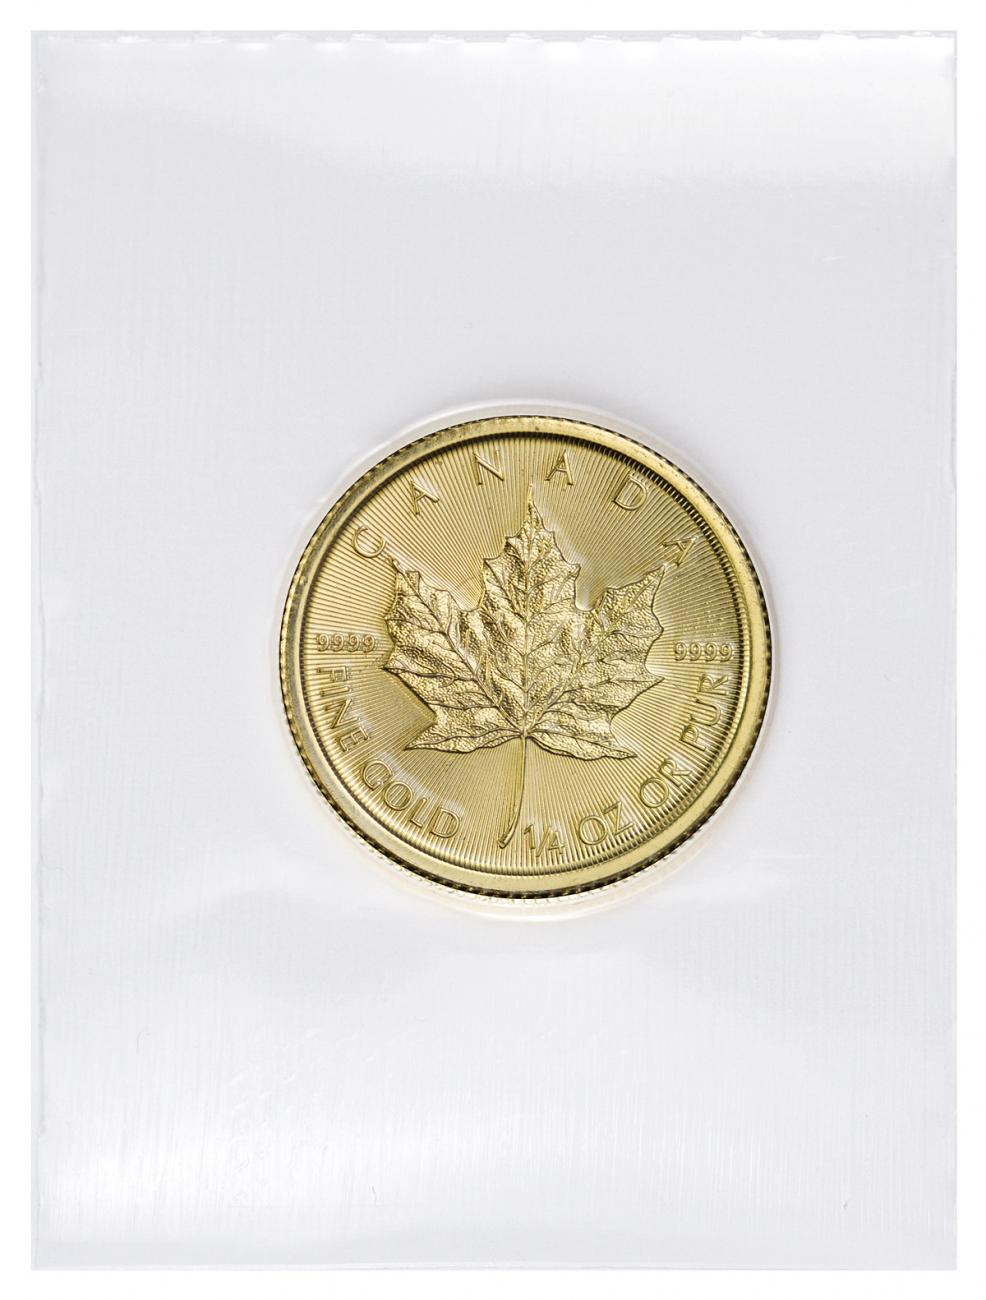 2018 Canada 1/4 oz Gold Maple Leaf $10 Coin GEM BU Mint Sealed